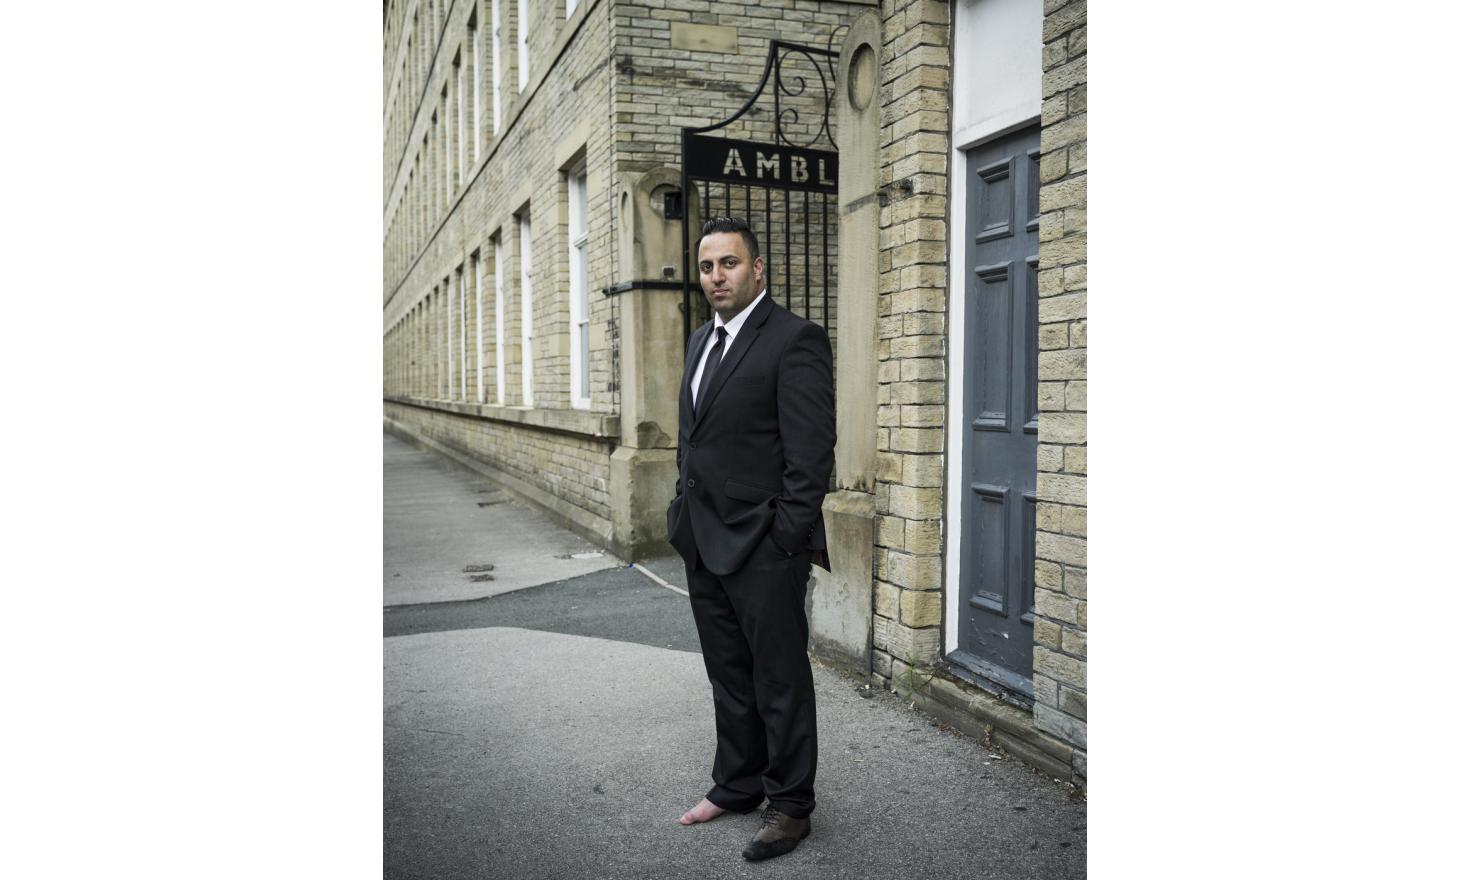 """Mohammed Naz is a security guard in Bradford. He is the grand-son of immigrants from Kashmir. The offices are housed in a former textile mill, where his father used to work. He believes the town voted to leave because the are """"many fascists here""""."""